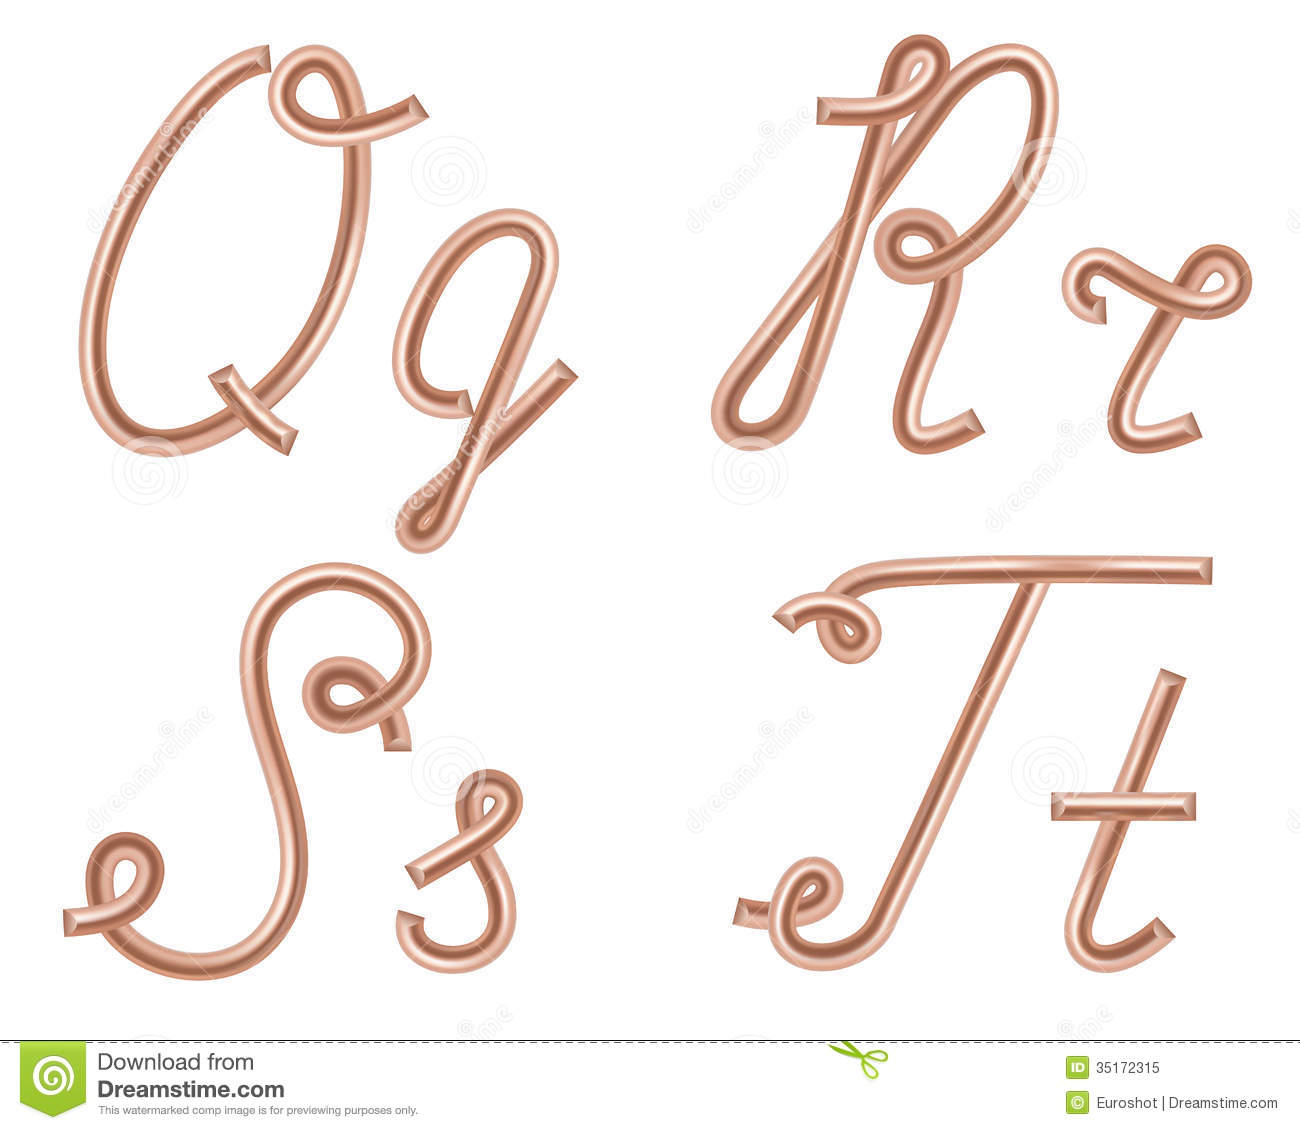 Q, R, S, T Vector Letters Made Of Metal Copper Wire. Stock Vector ...